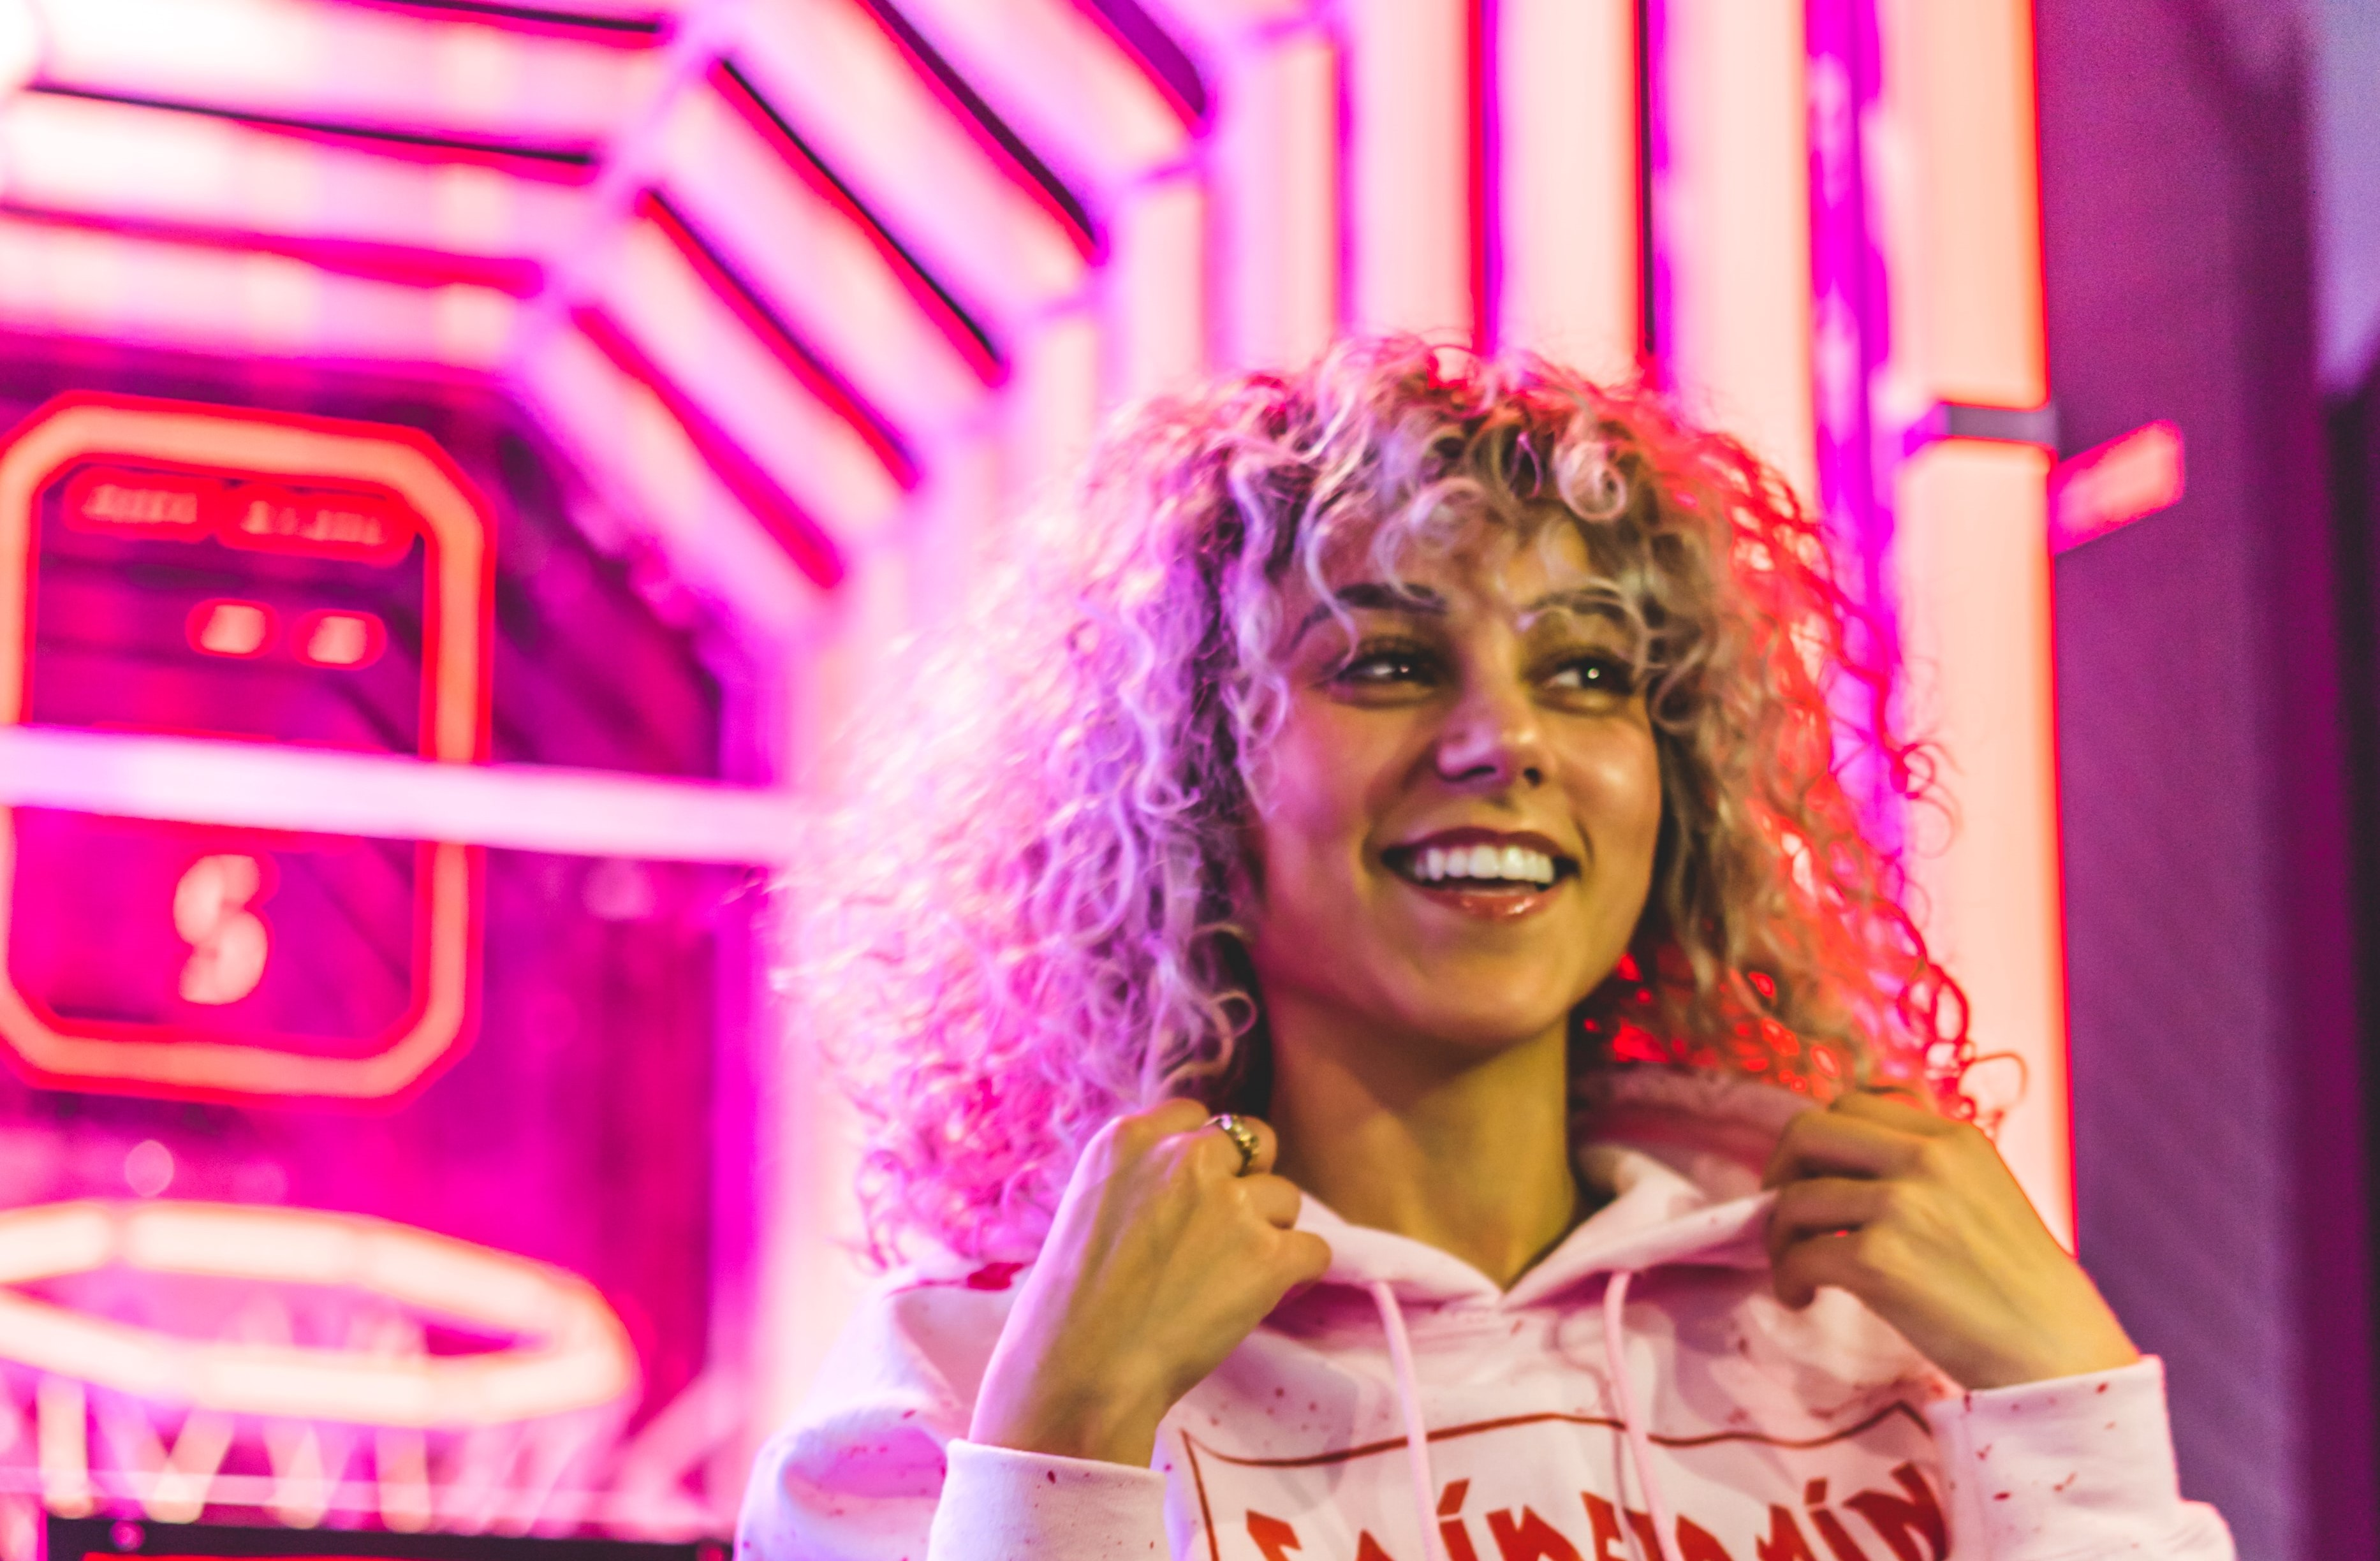 Curly-haired person in a hoodie smiling, lit up by pink arcade lights